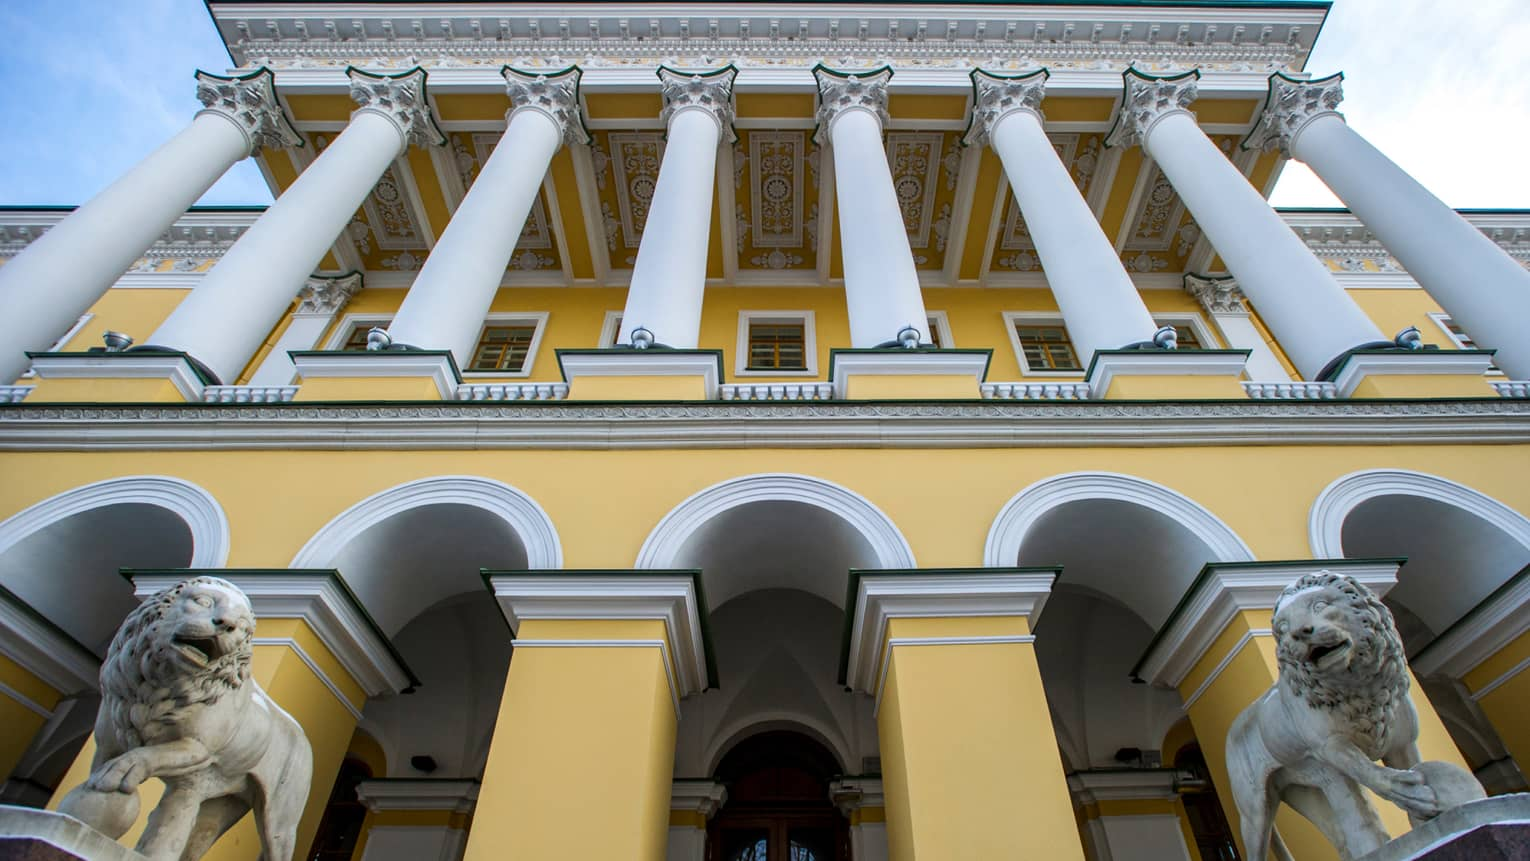 Four Seasons Hotel St. Petersburg entrance looking up past two marble lions, tall white pillars